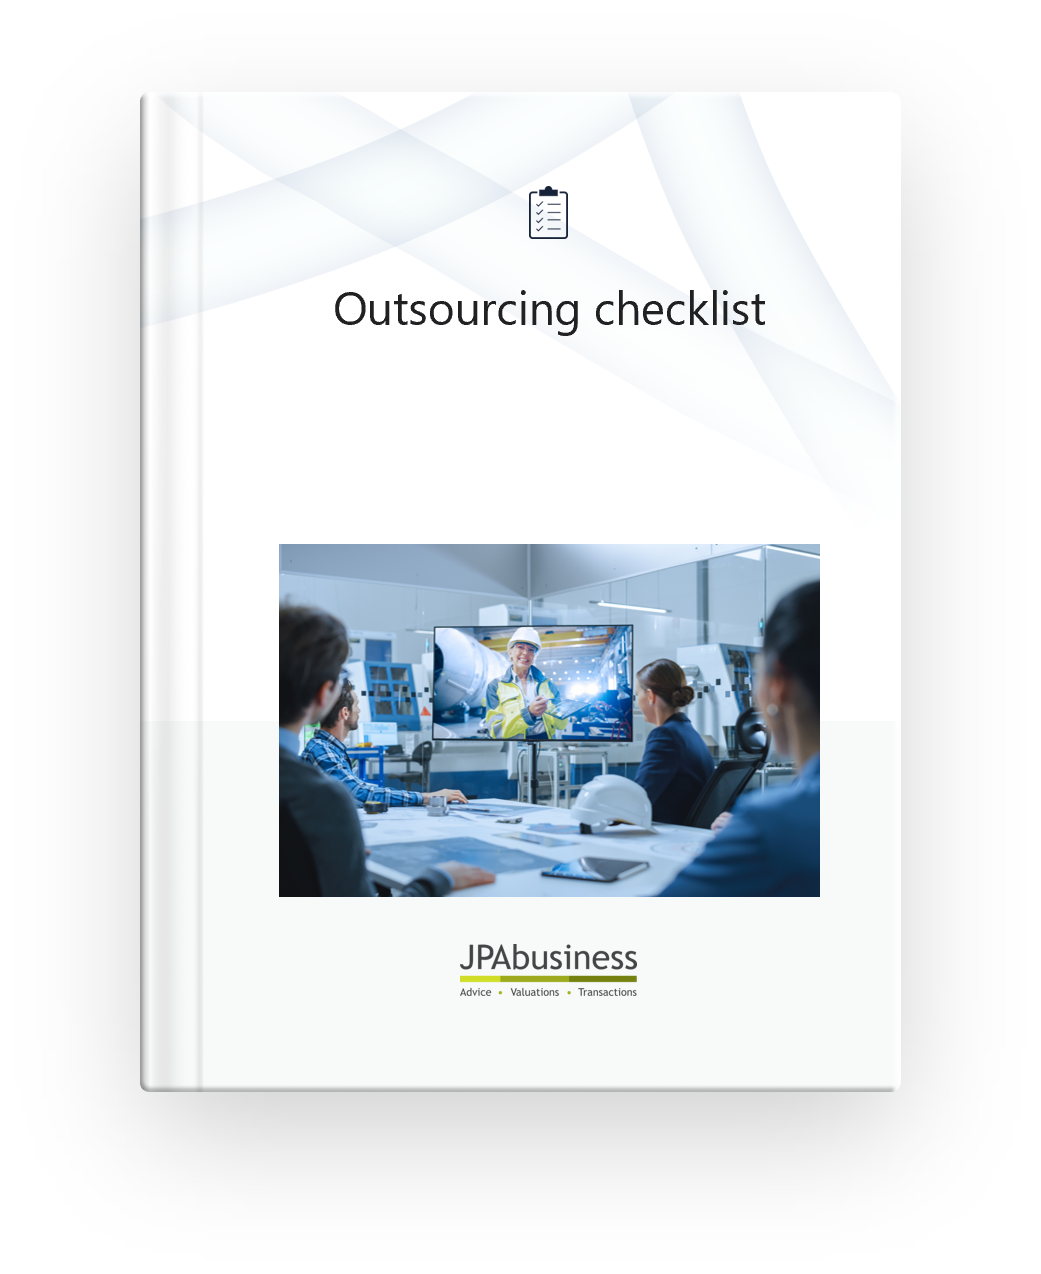 The_Outsourcing_Checklist